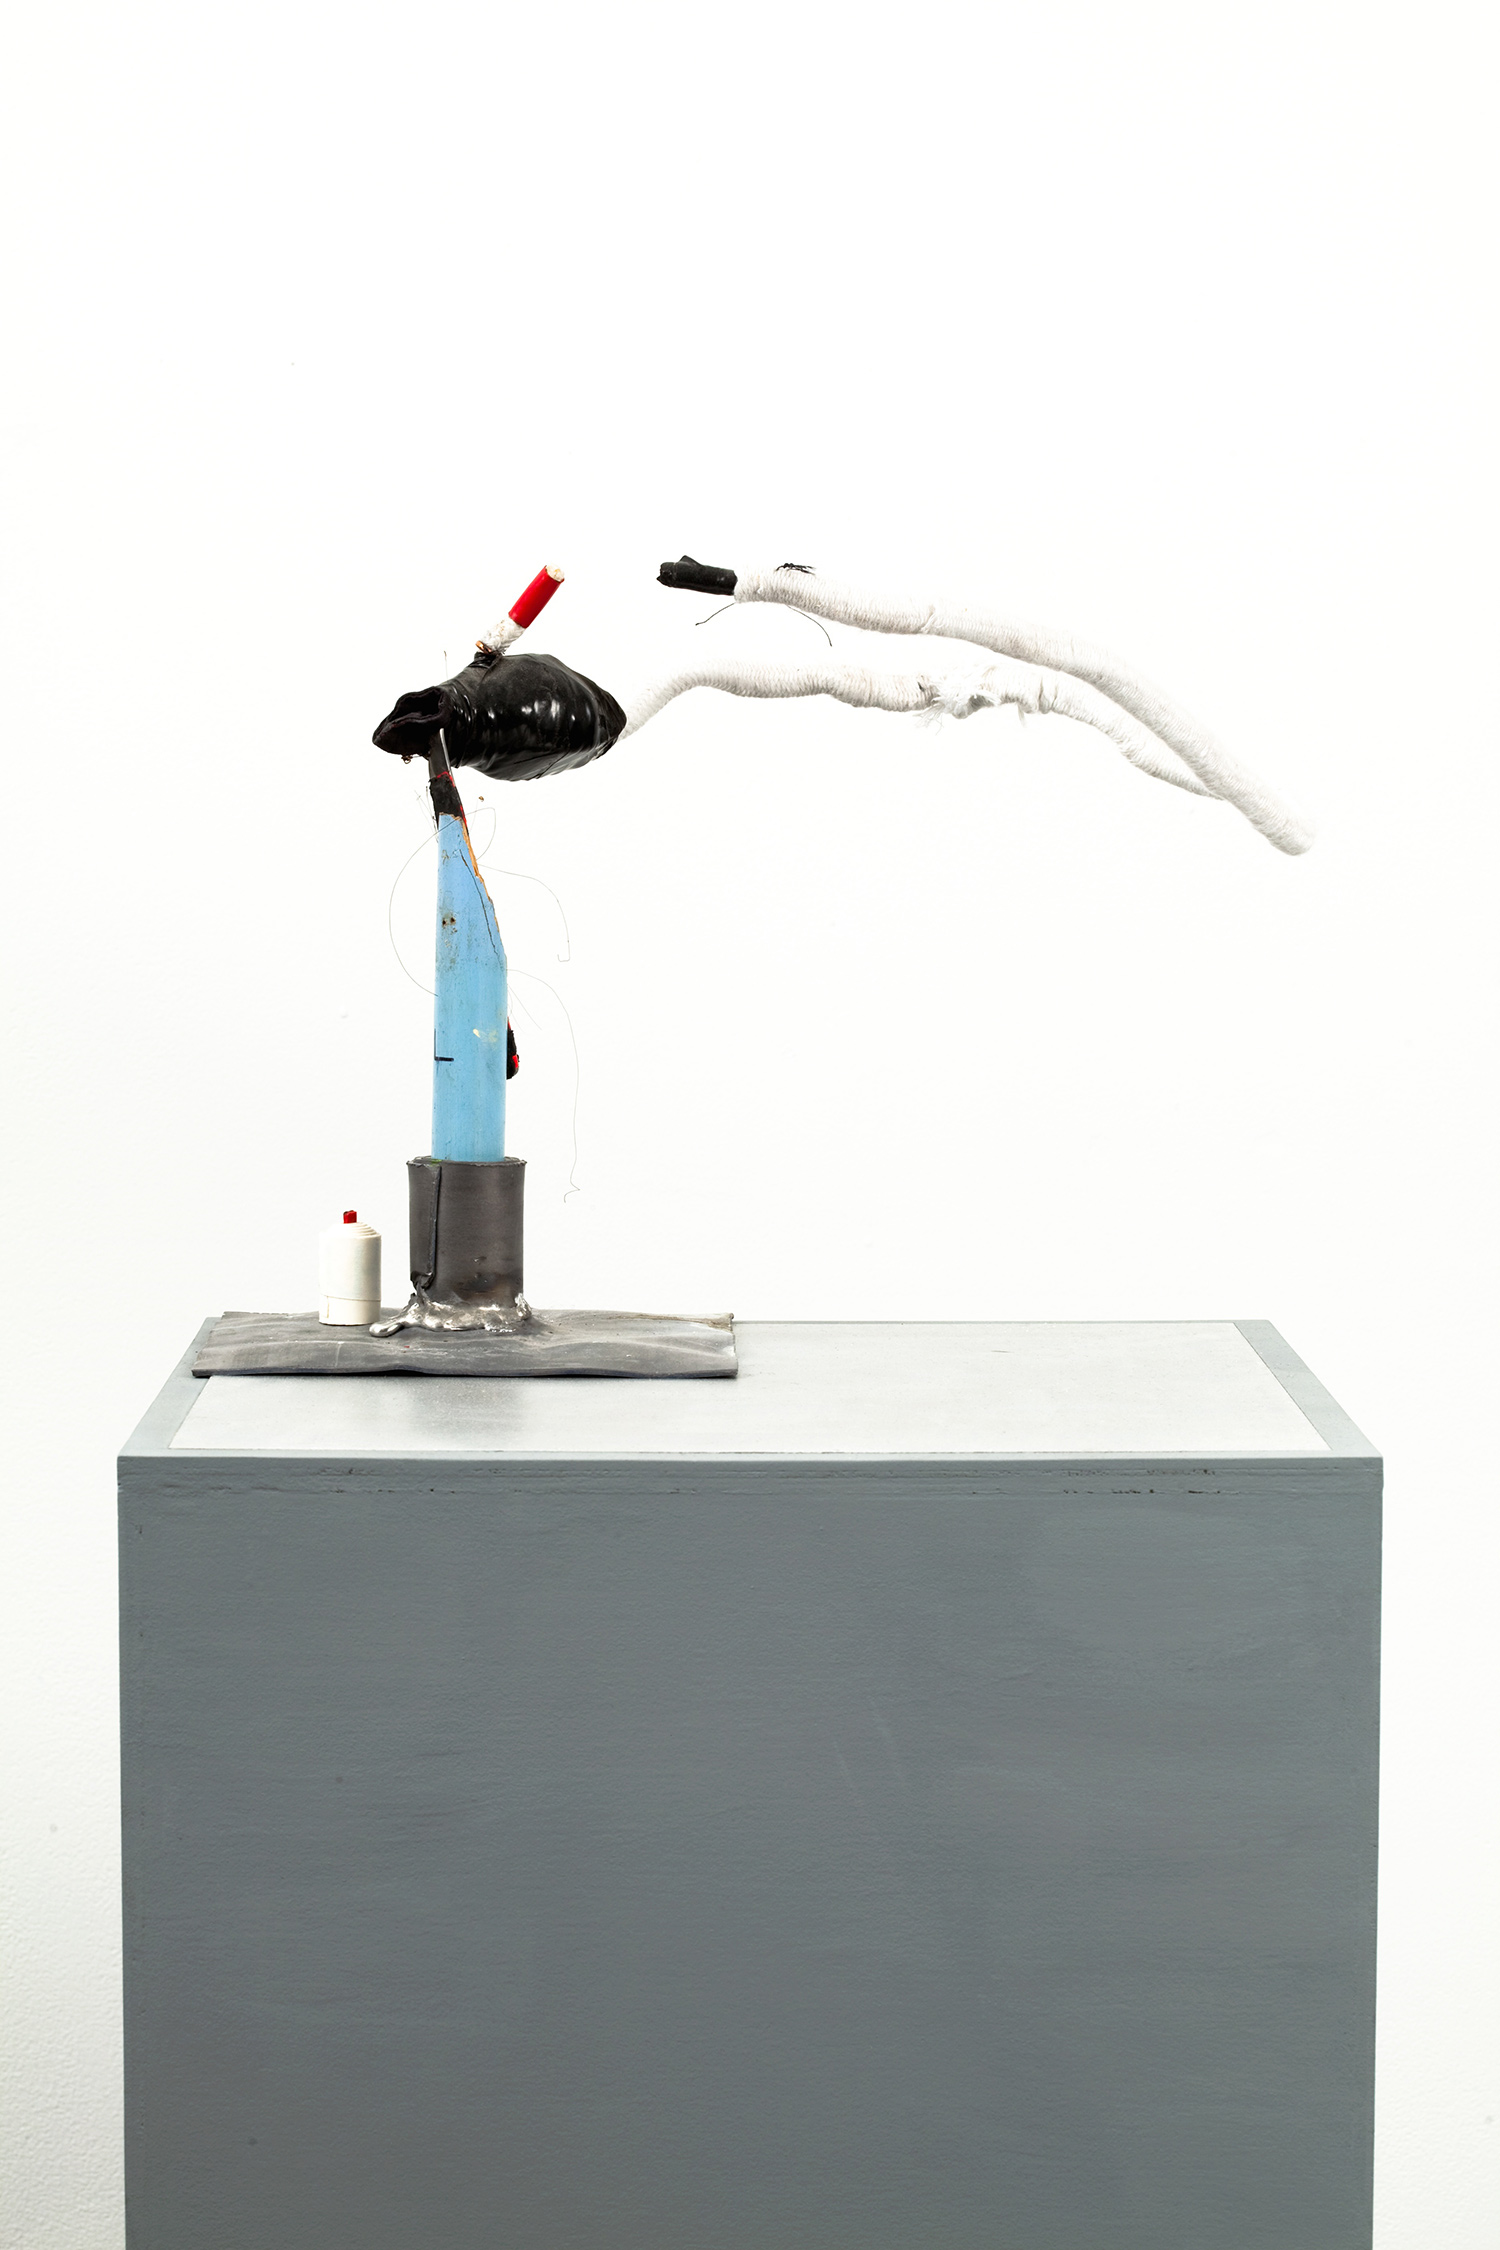 """B.S. Trophy . Detail. Lead, silver spoon, copper, white rope, Resistant's New Kid sleeve, black electric tape, chewing gum, paper. 45"""" x 13"""" x 13"""". 2009."""